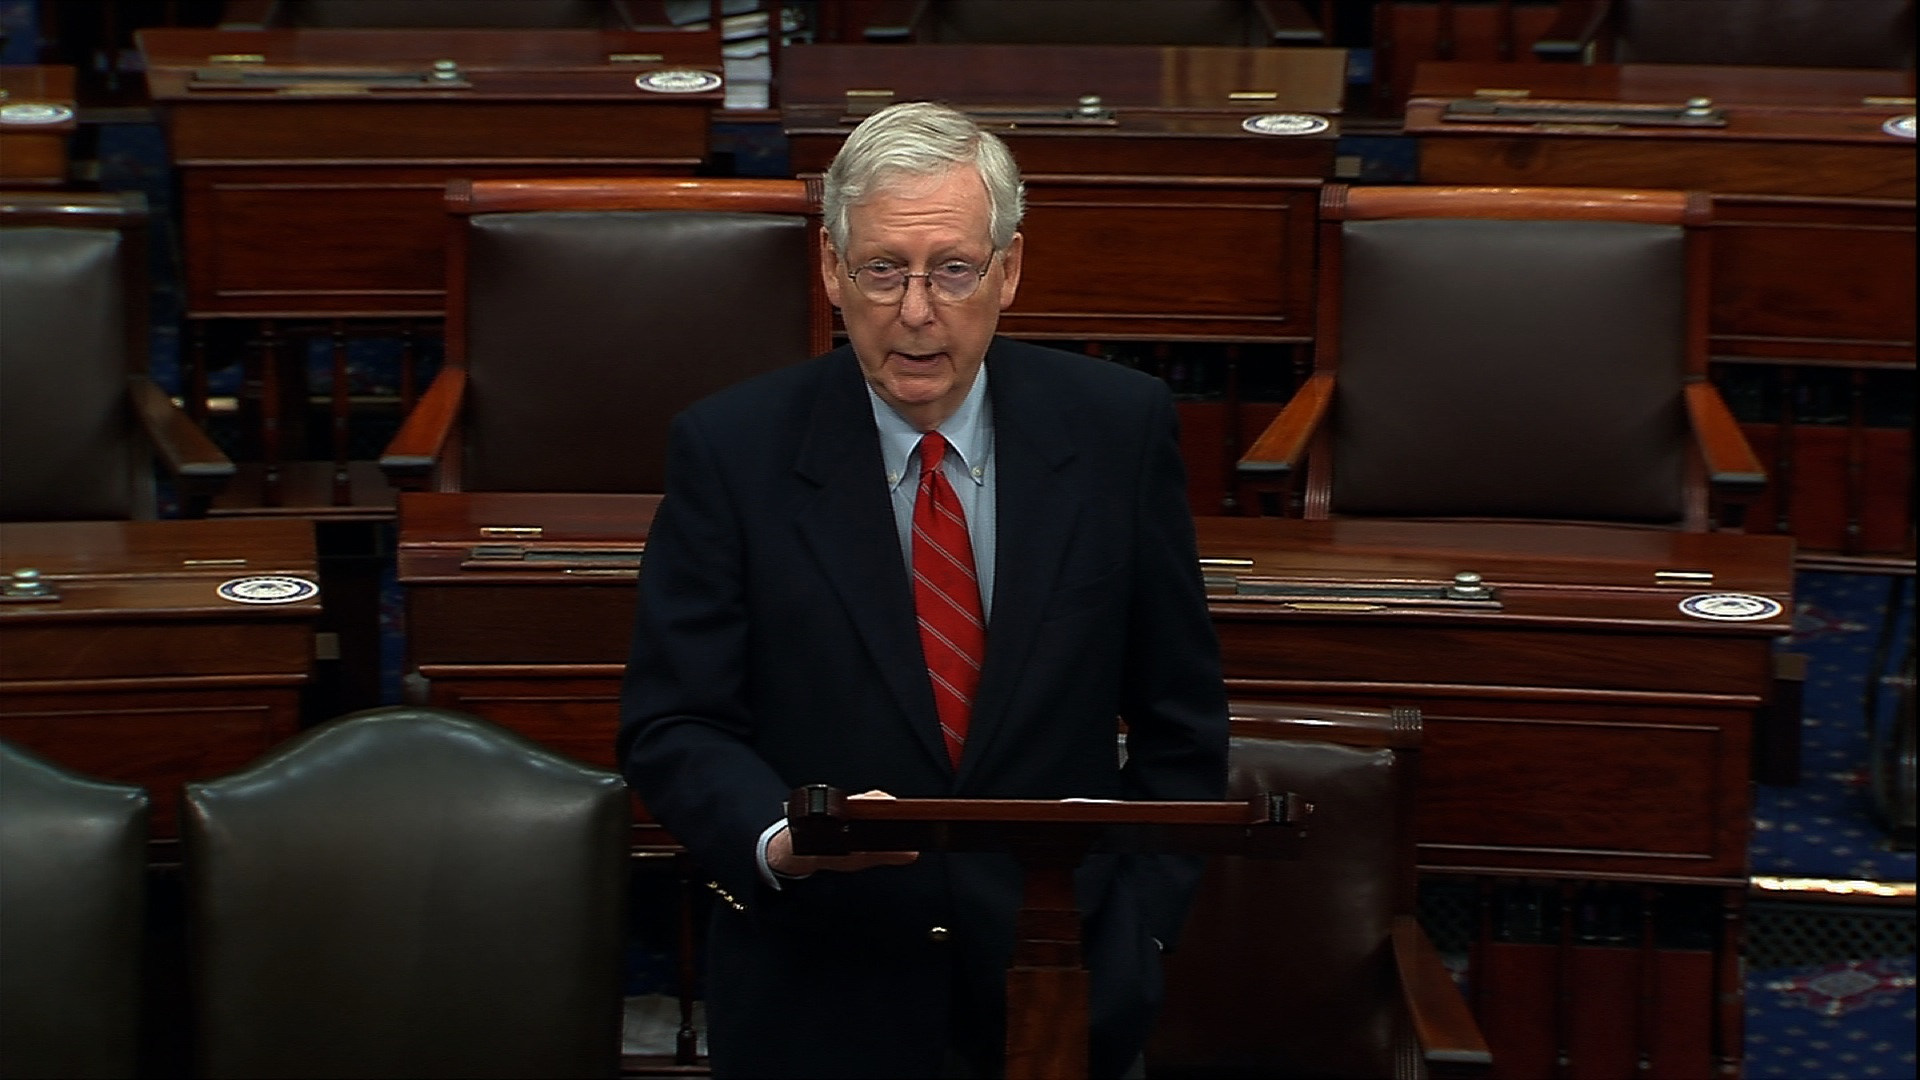 Senate Majority Leader Mitch McConnell speaks on the senate floor in Washington, DC, on November 9.